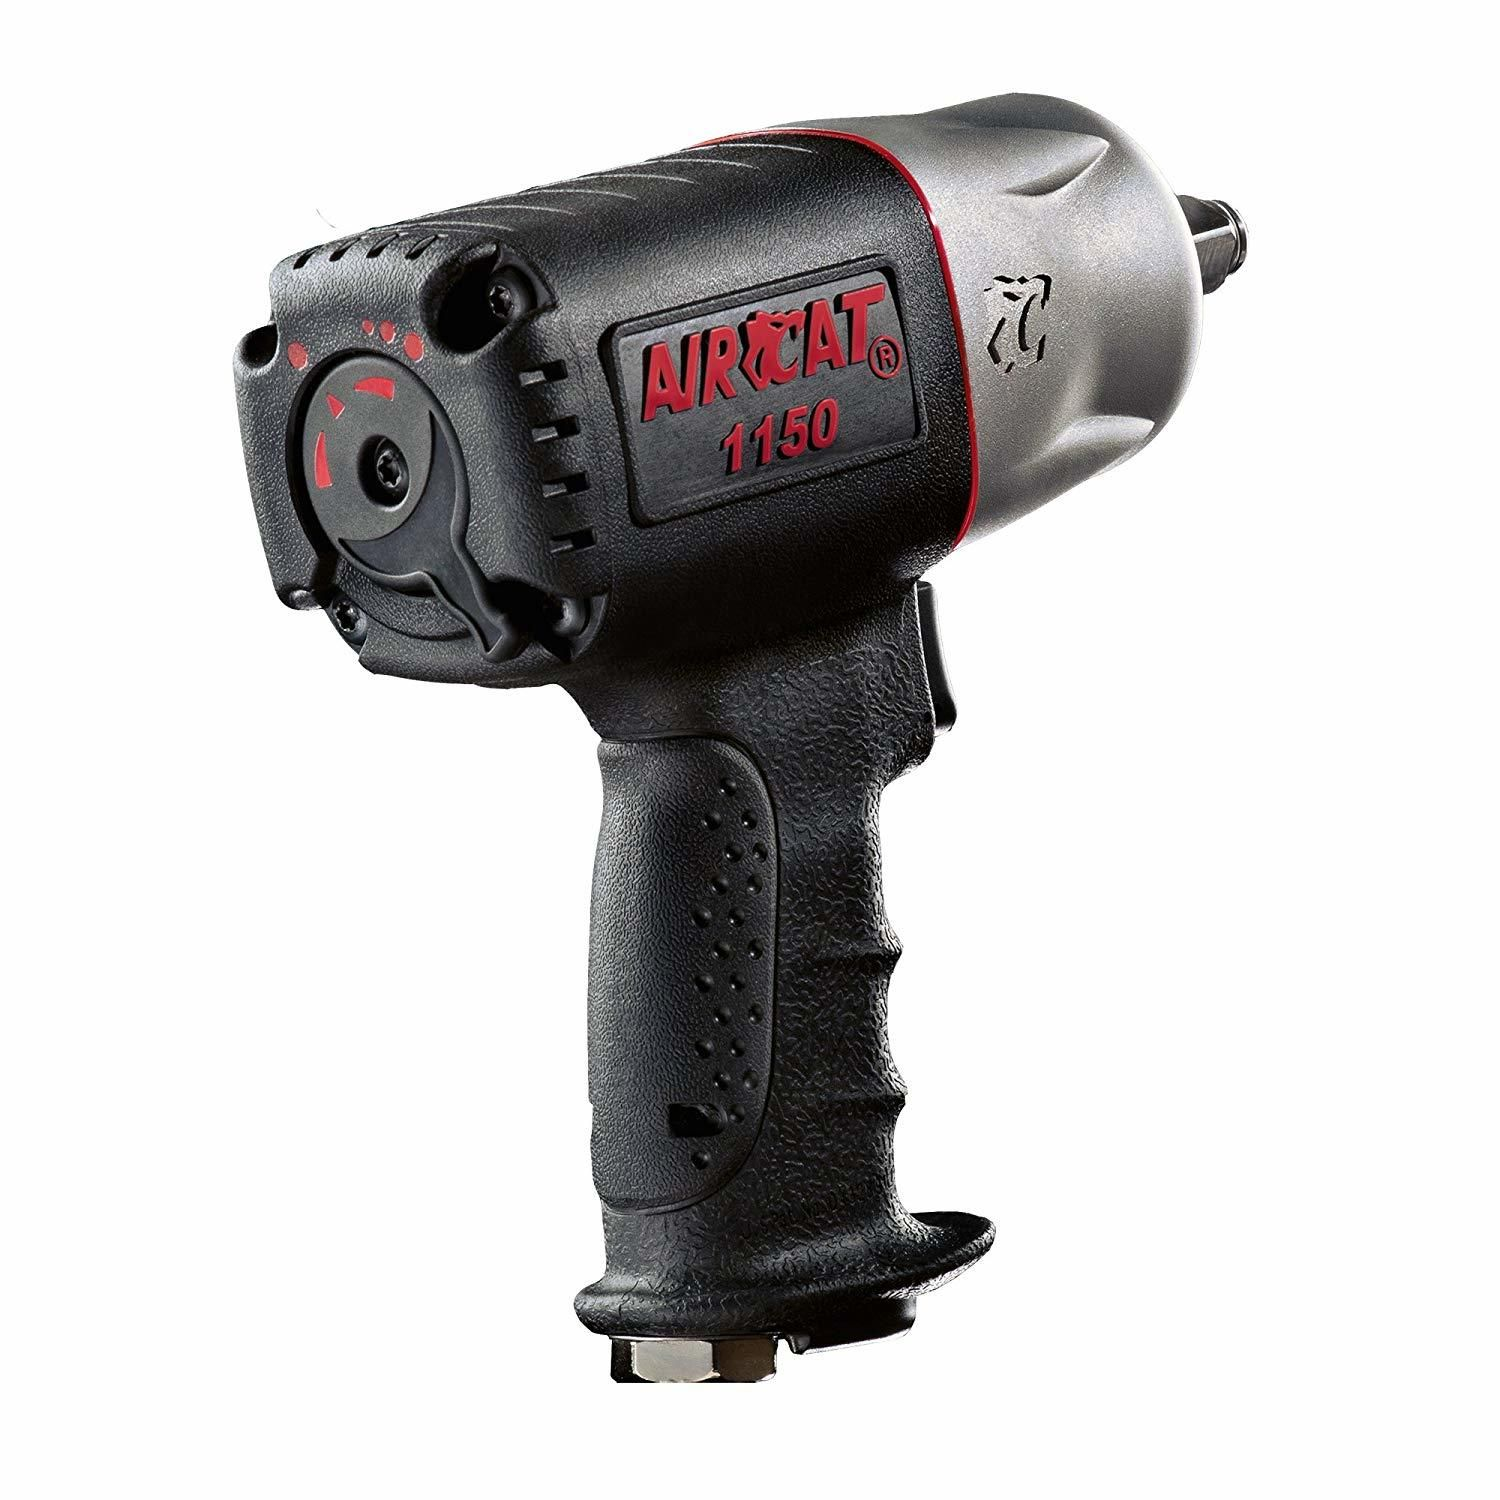 Aircat 1150 Impact Wrench Review Should You Buy It